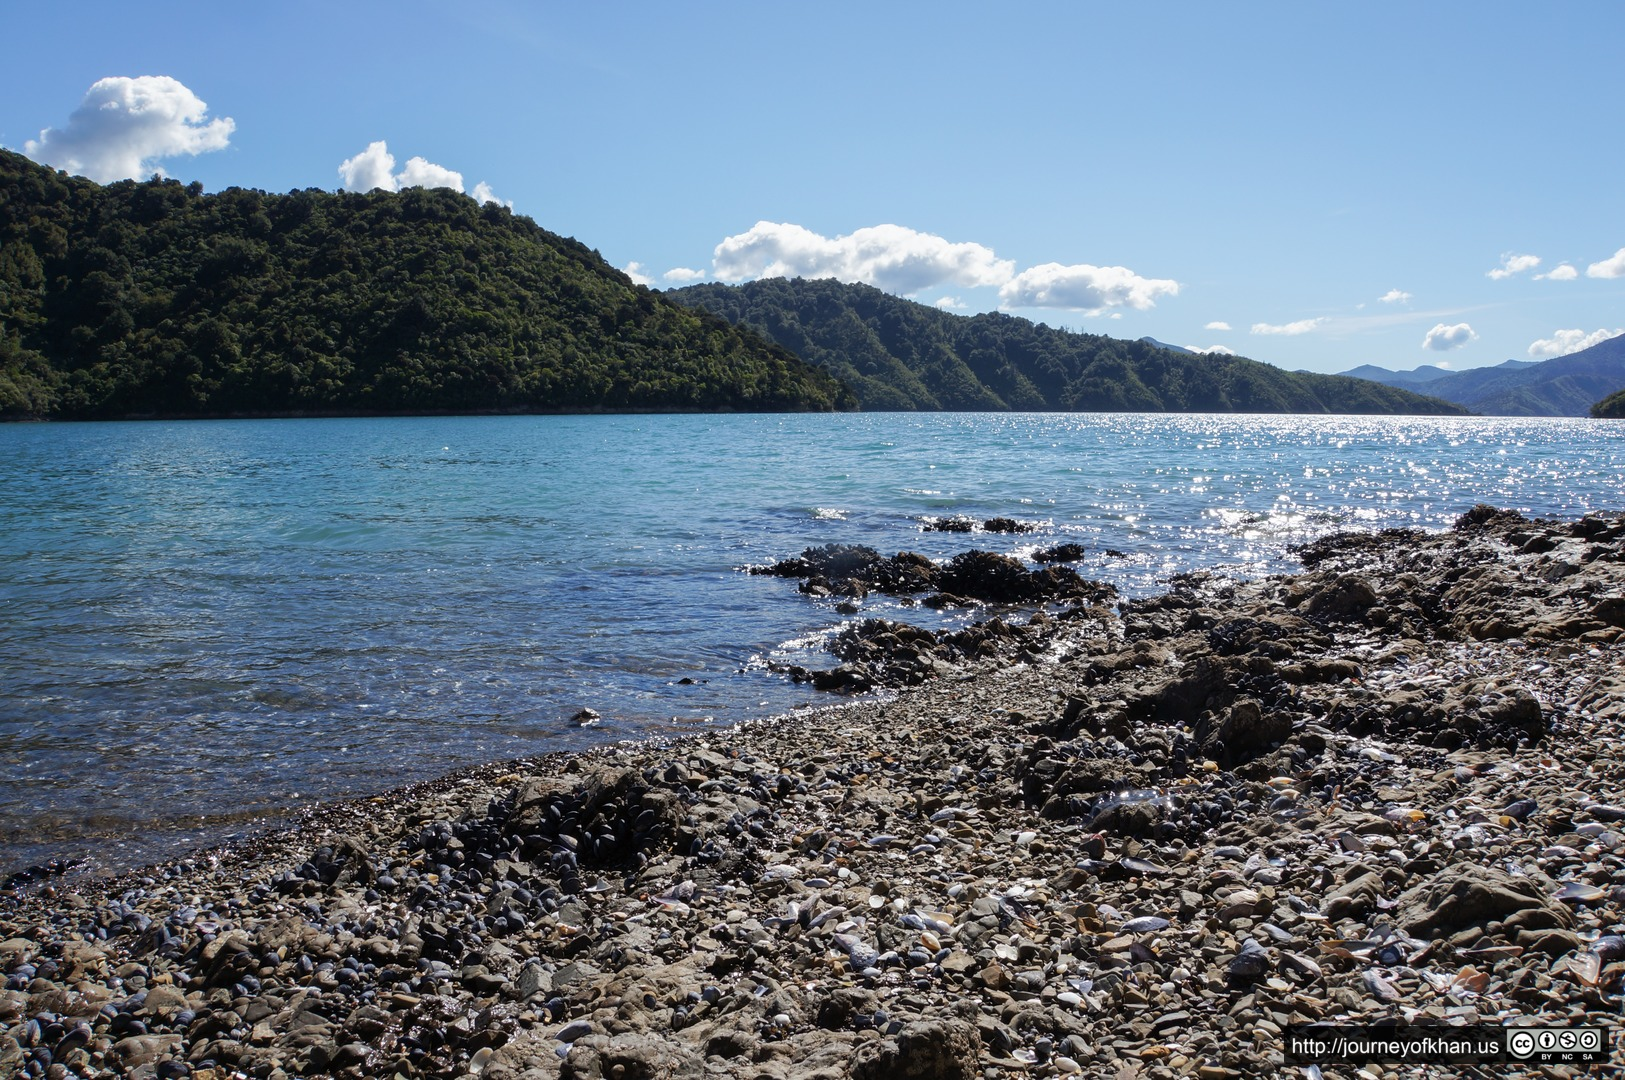 The Shores of Picton